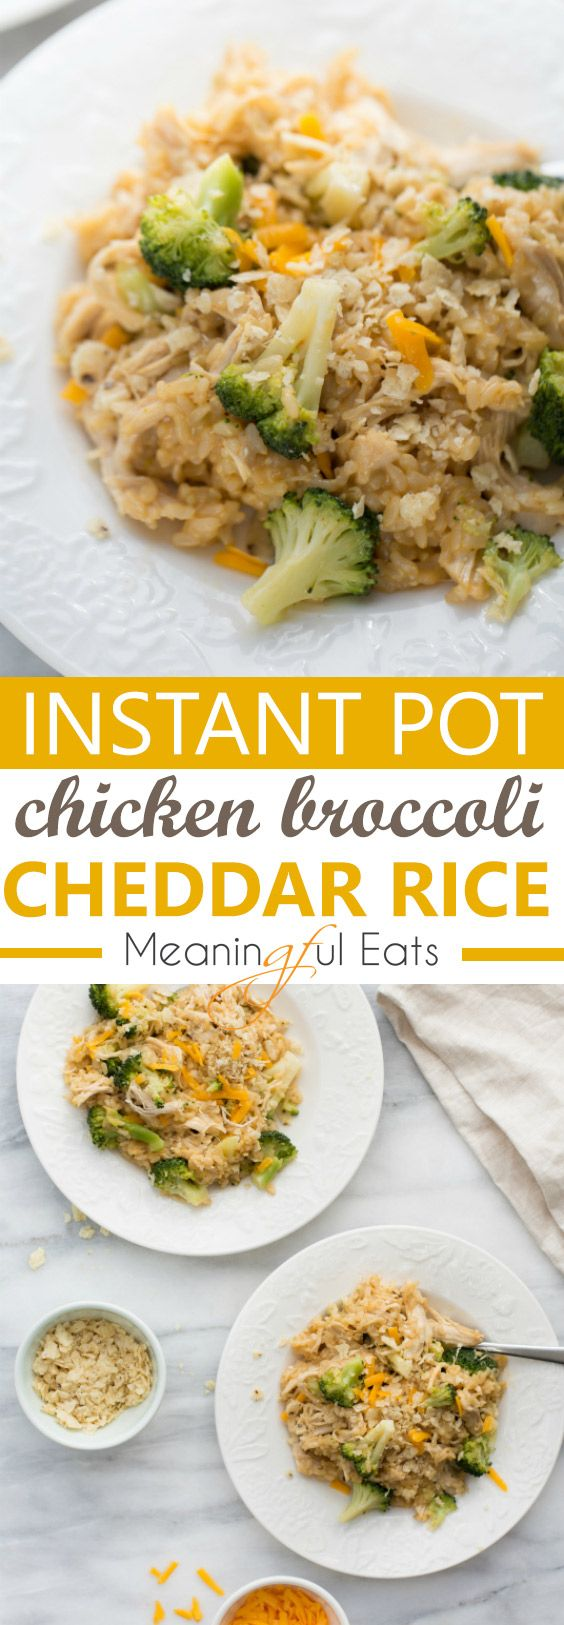 Instant Pot Cheesy Chicken Broccoli and Rice - Meaningful Eats